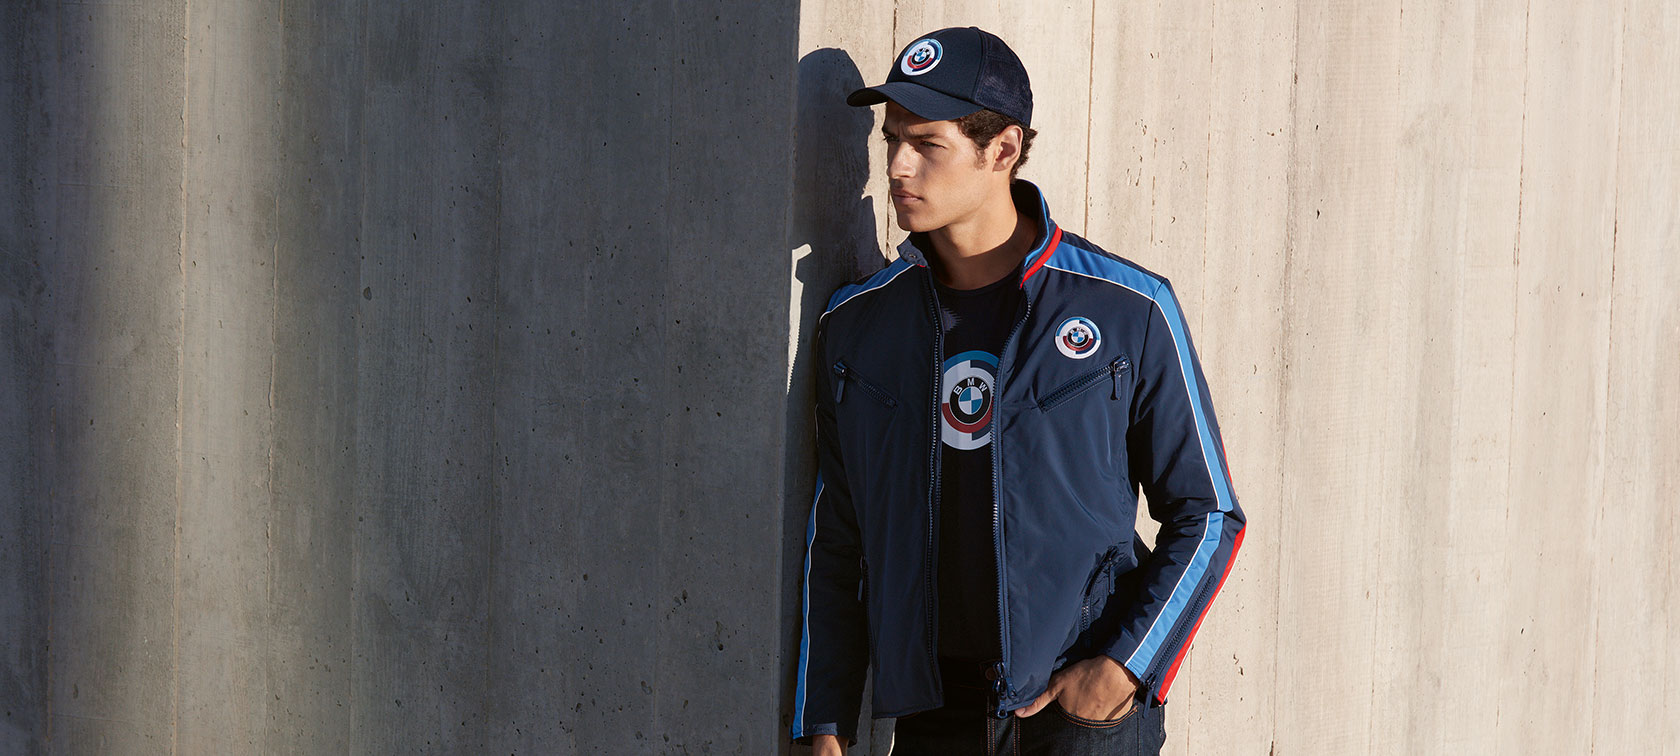 A man is shown wearing a BMW Classic Men's Motorsport Jacket from the BMW Classic Collection.